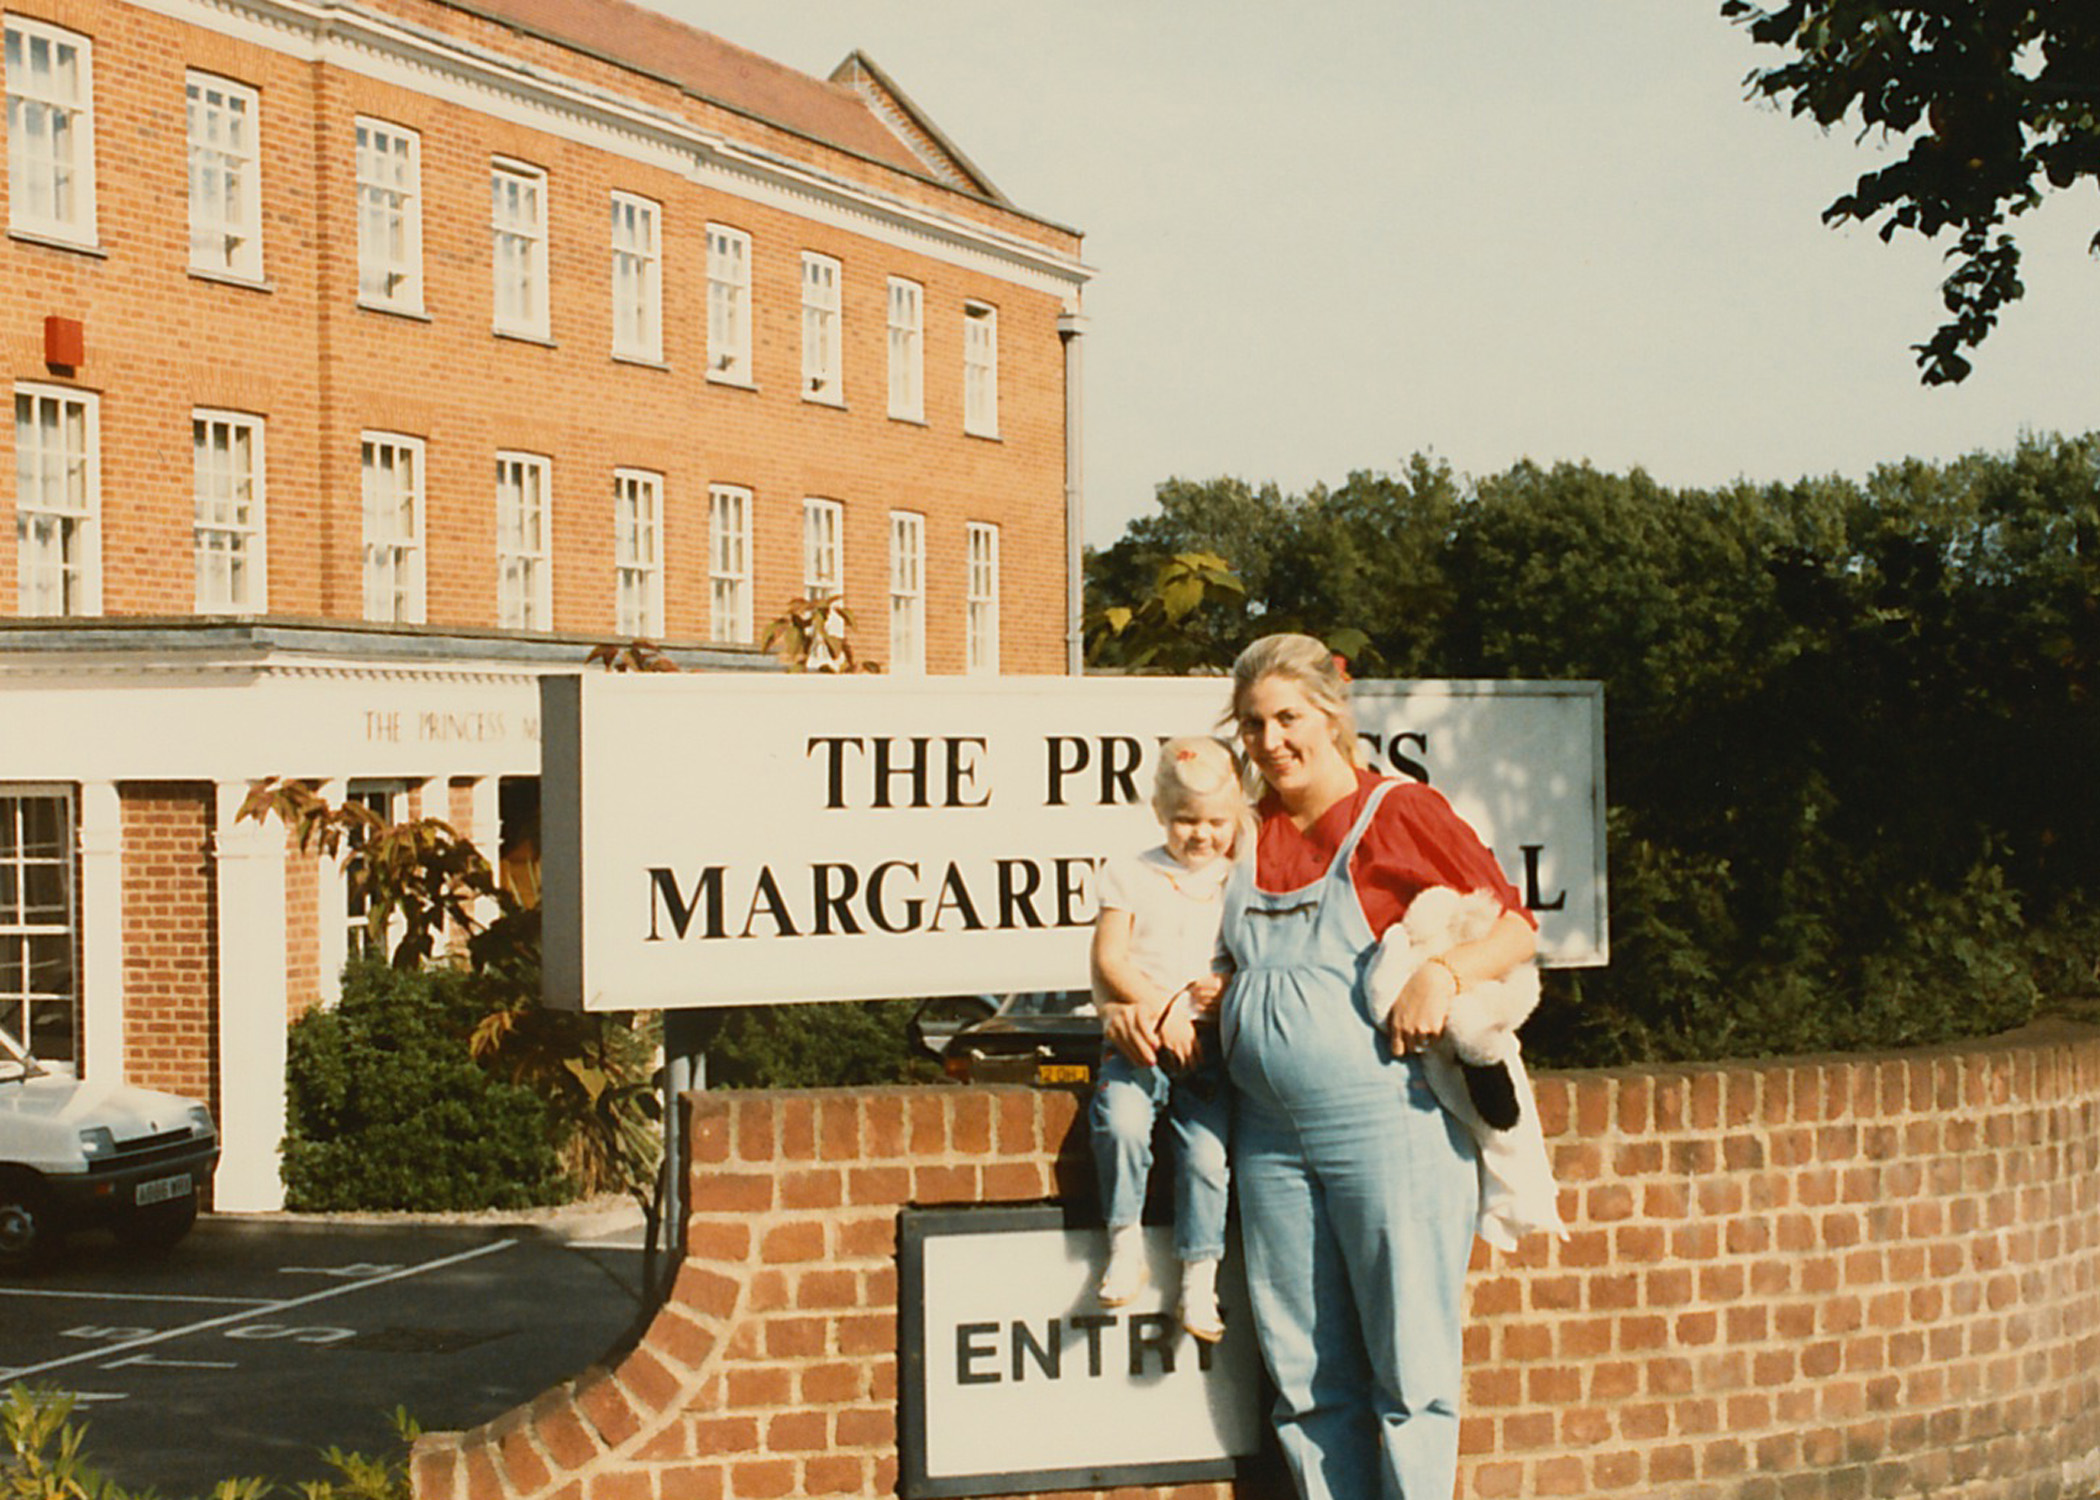 Me, my mother and Lauren as a baby bump in front of the Princess Margaret Hospital in Windsor, England where we were both welcomed into the world.